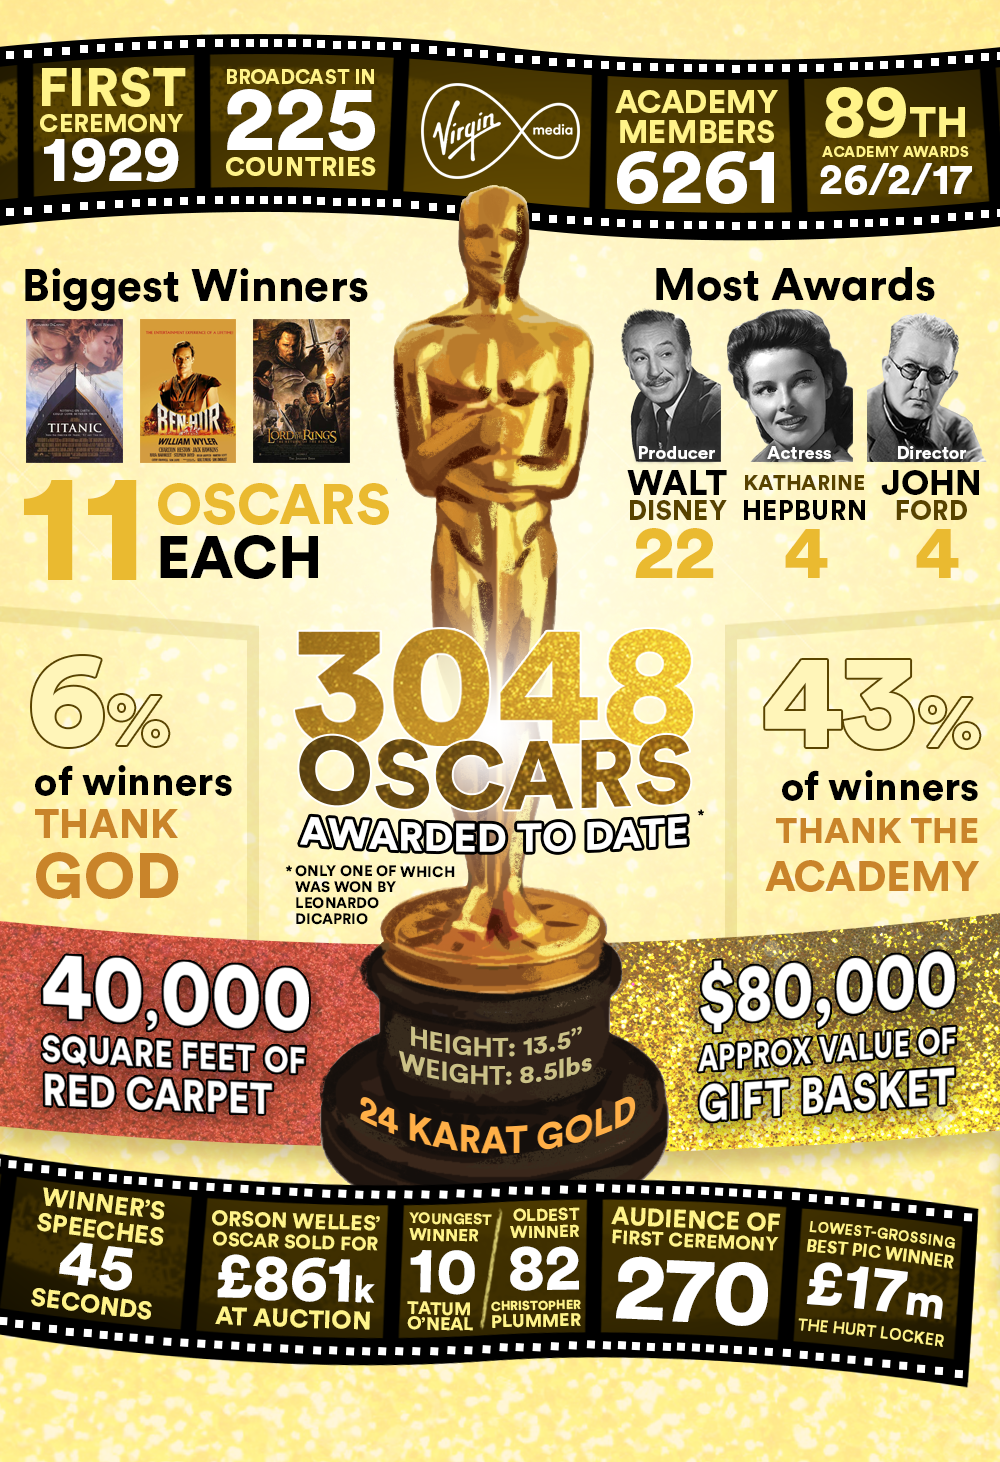 oscars by numbers.png